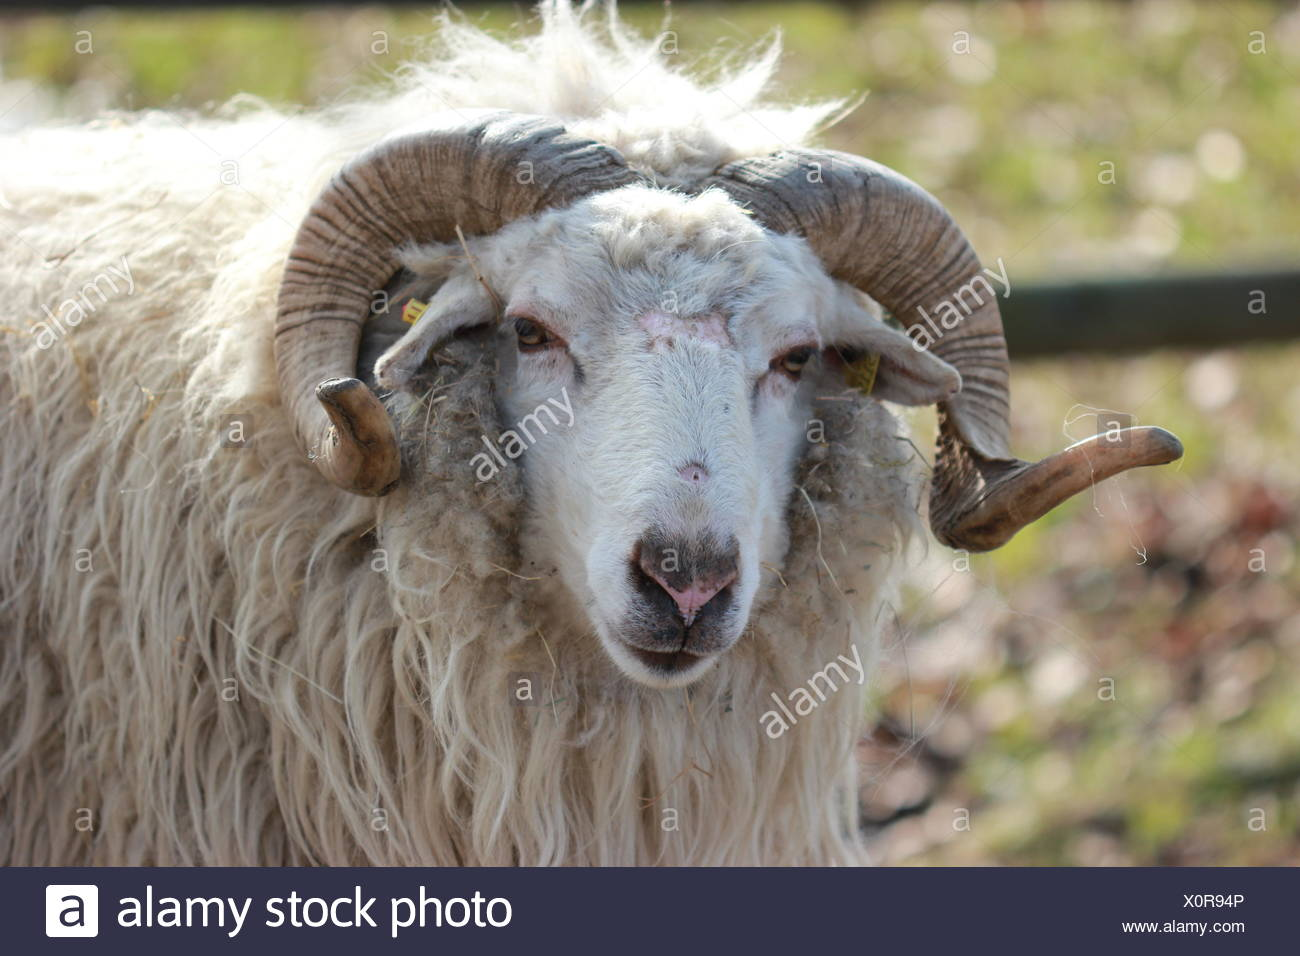 blank, european, caucasian, sheep, wool, spring, milk, cornets, twisted, meat, - Stock Image